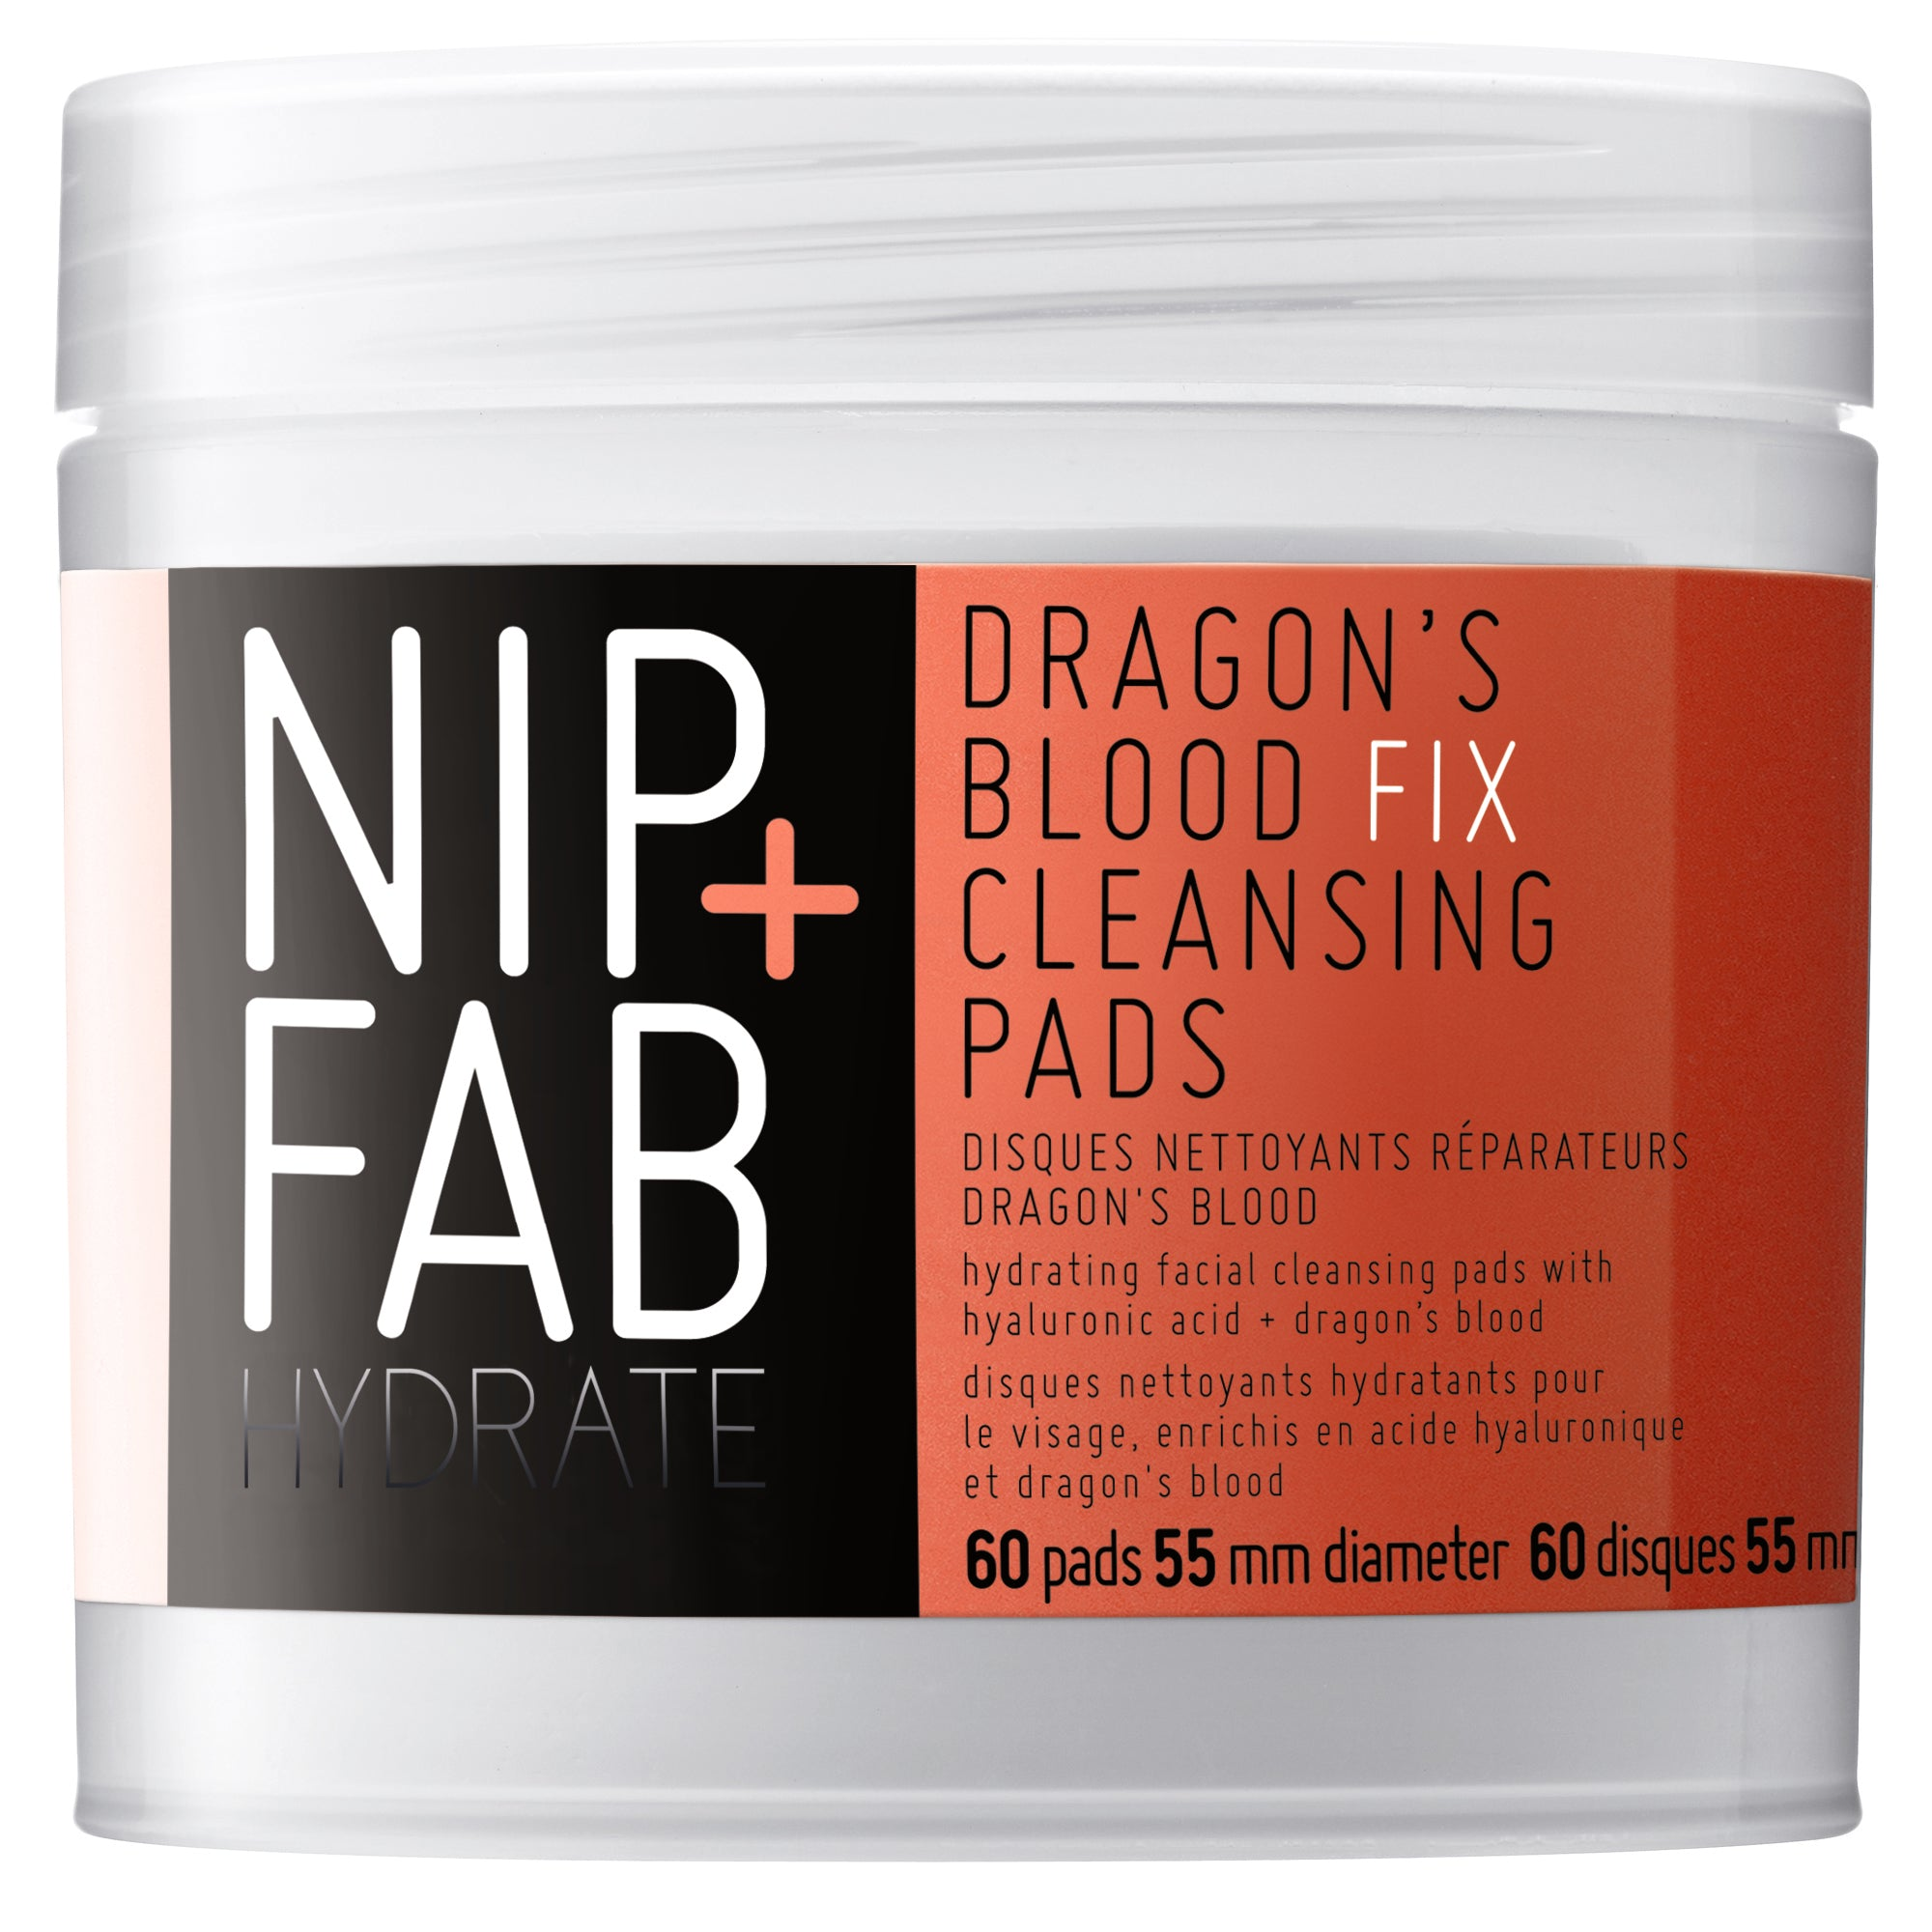 NIP+FAB DRAGON'S BLOOD FIX CLEANSING PADS